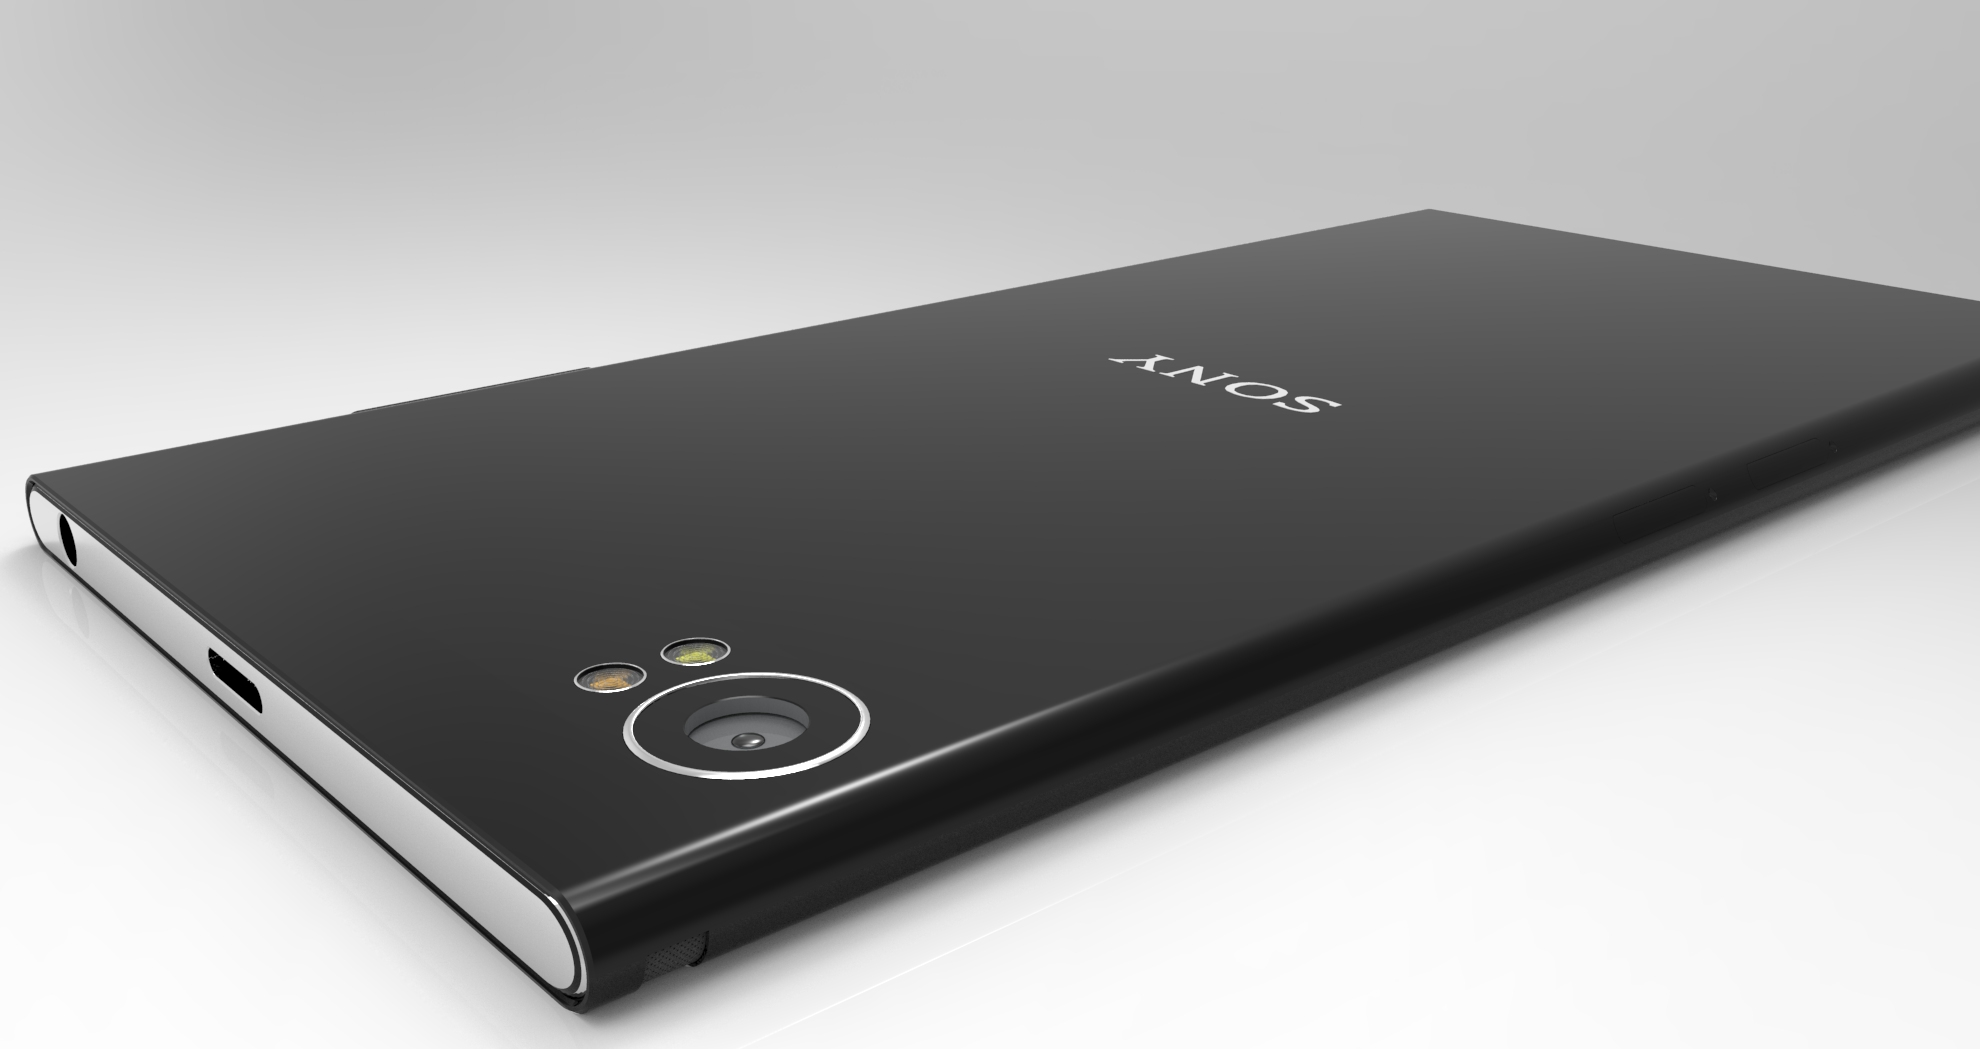 Sony-Xperia-Curve-concept